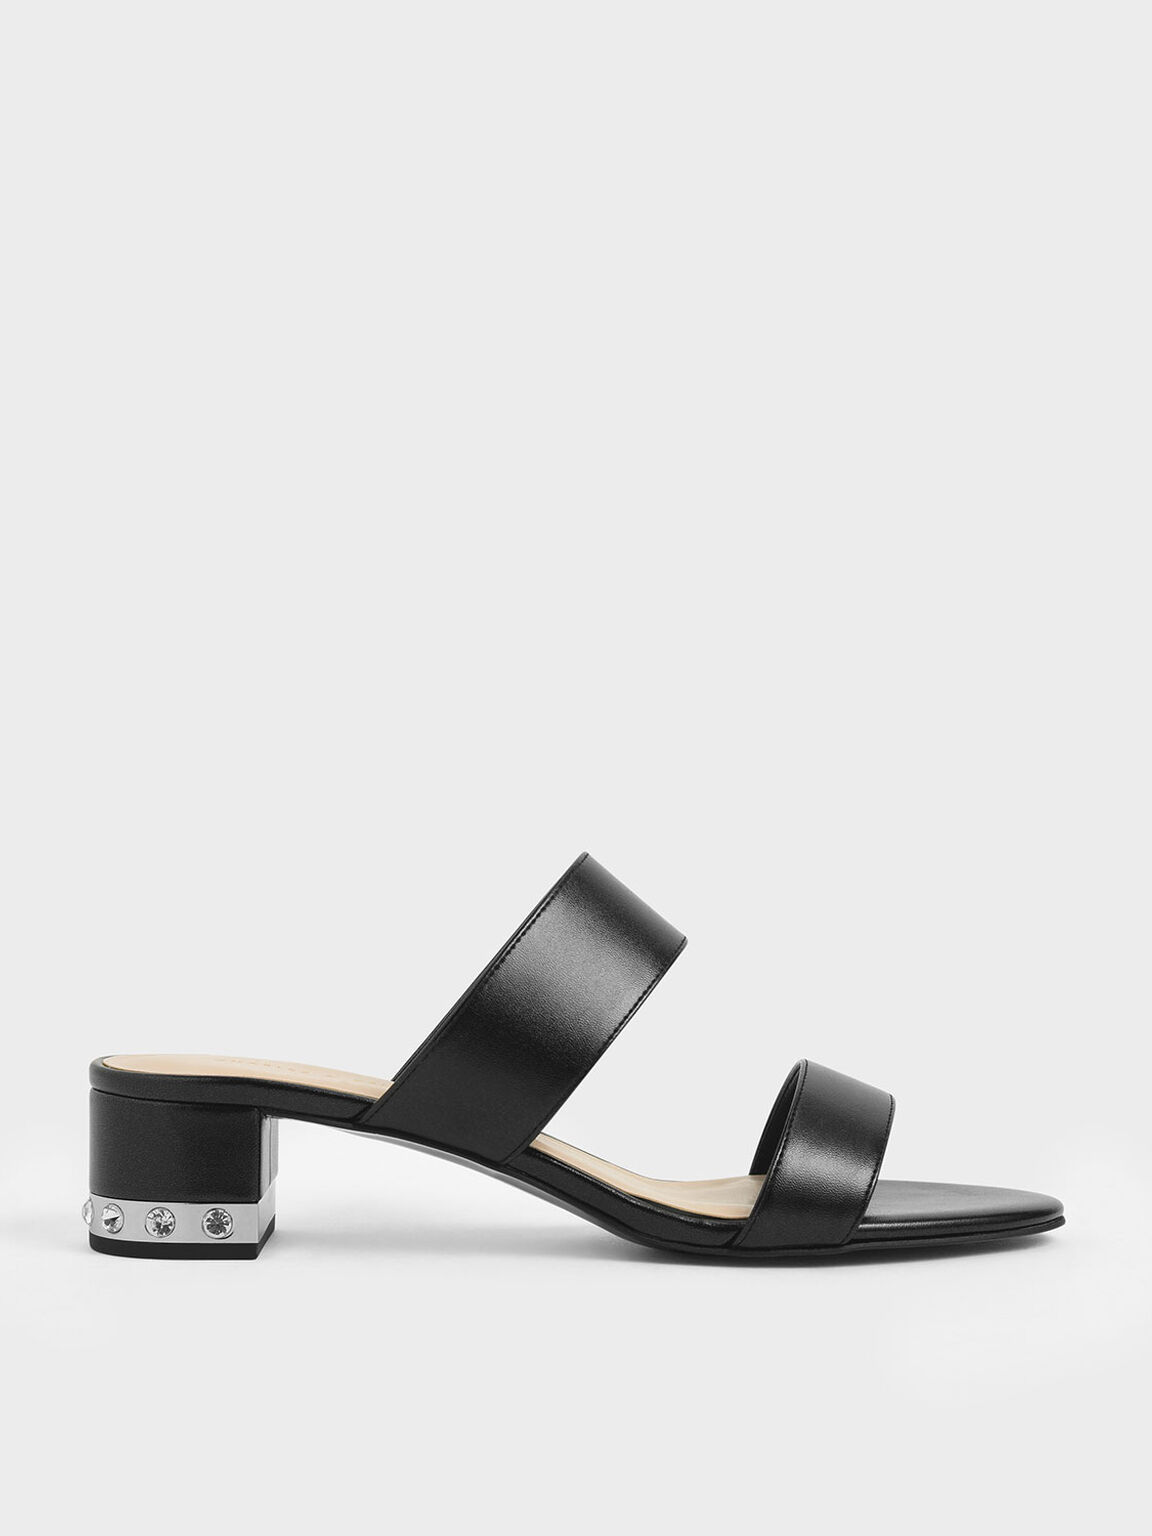 Embellished Block Heel Metallic Slide Sandals, Black, hi-res